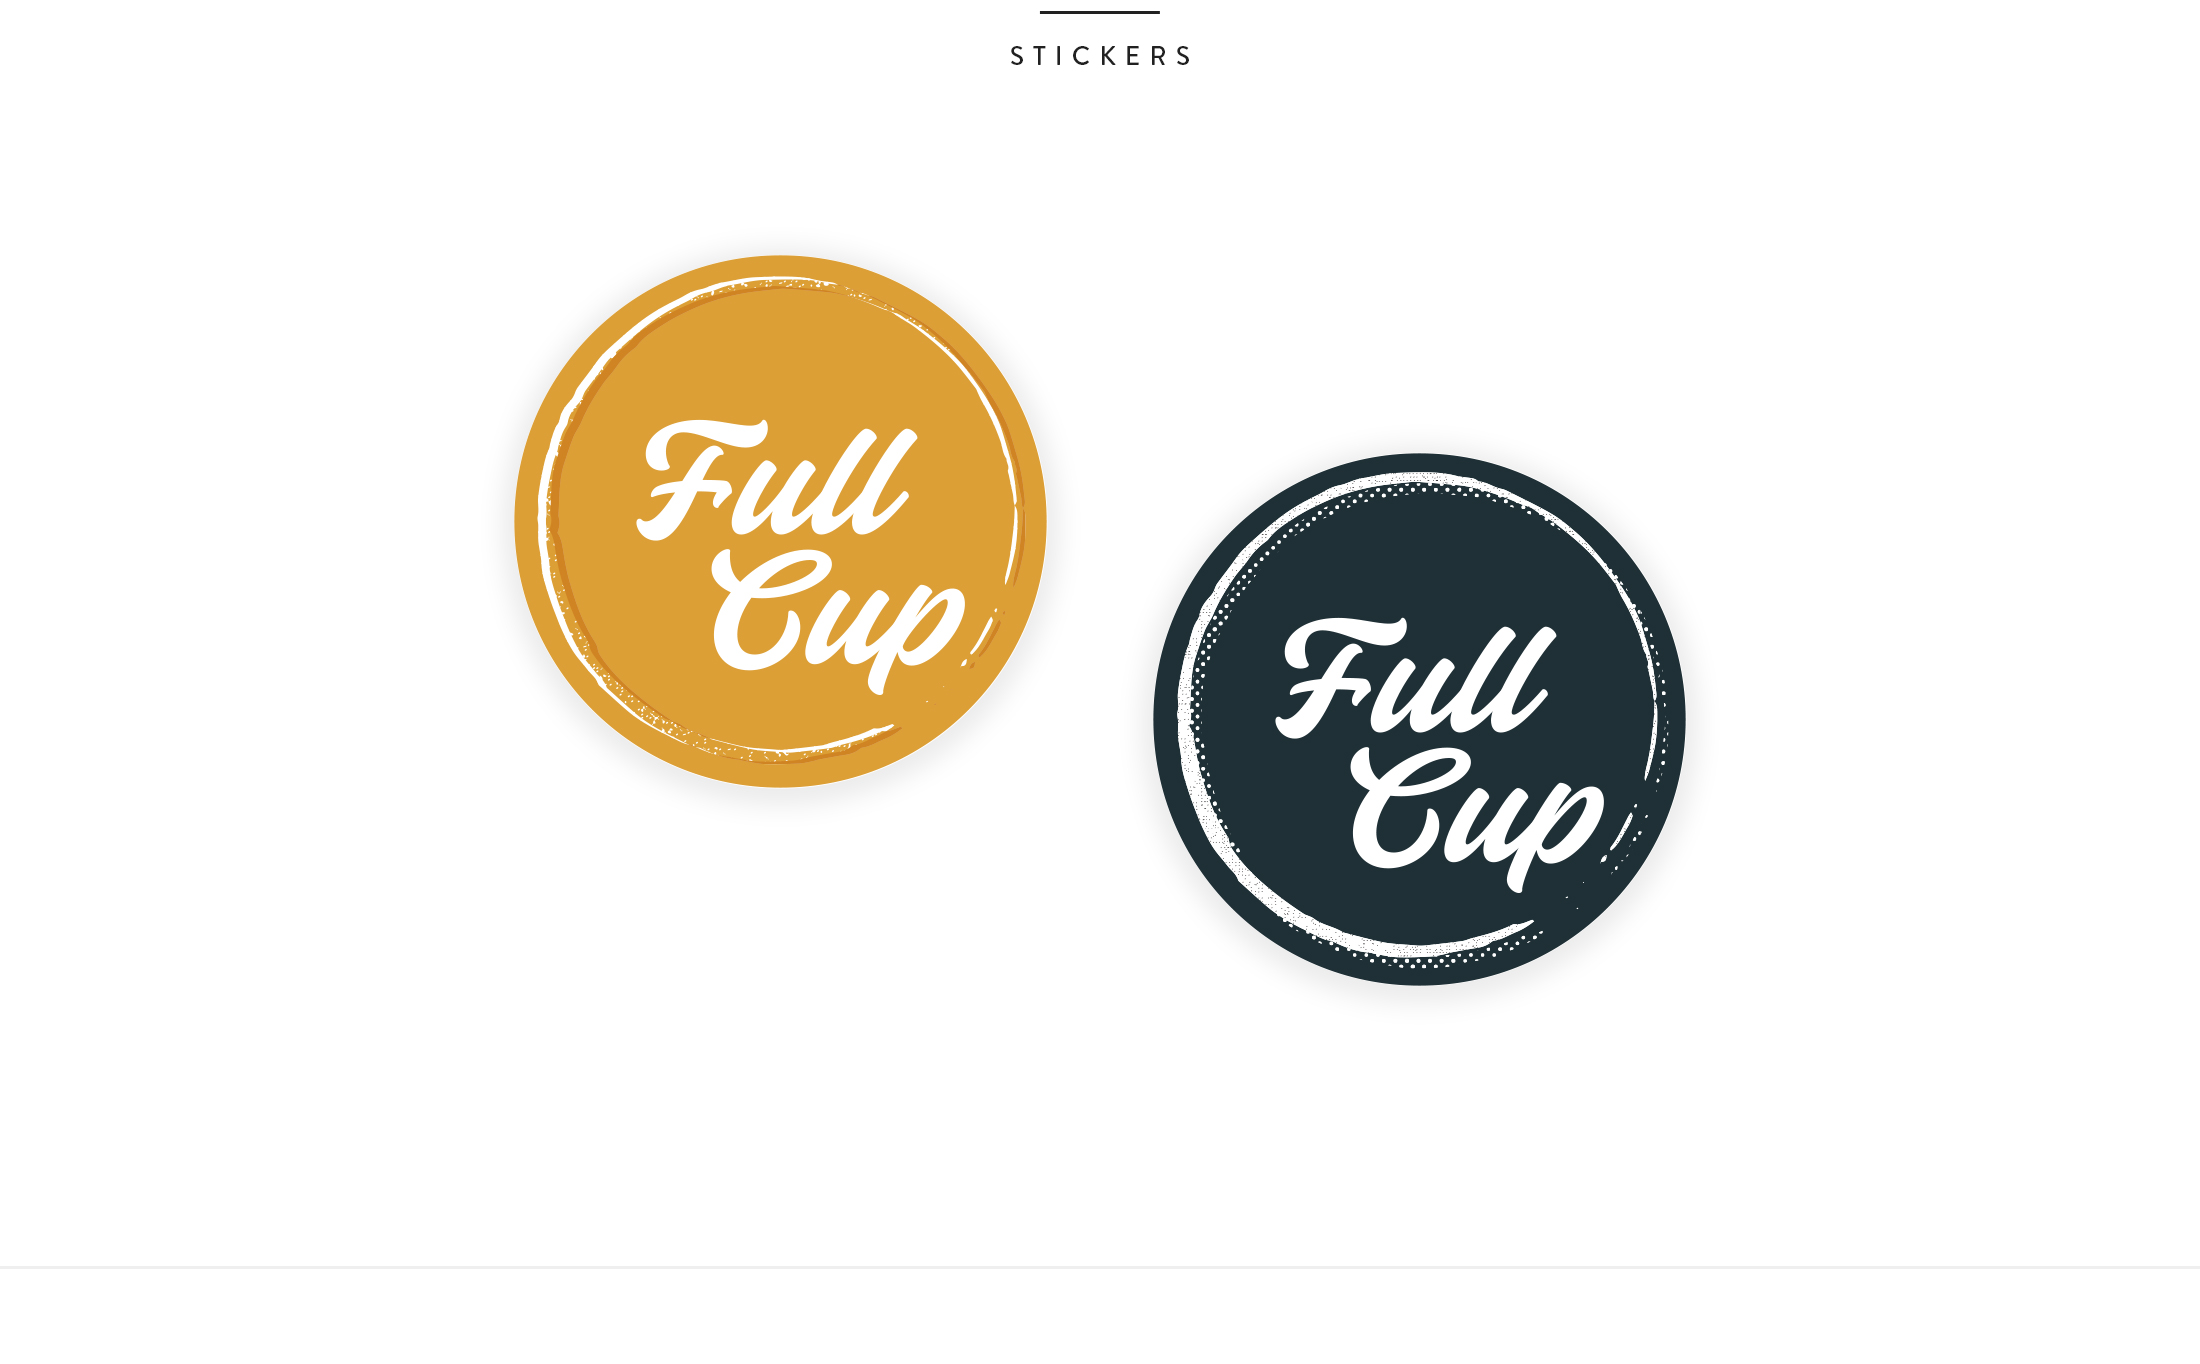 full-cup-stickers.jpg